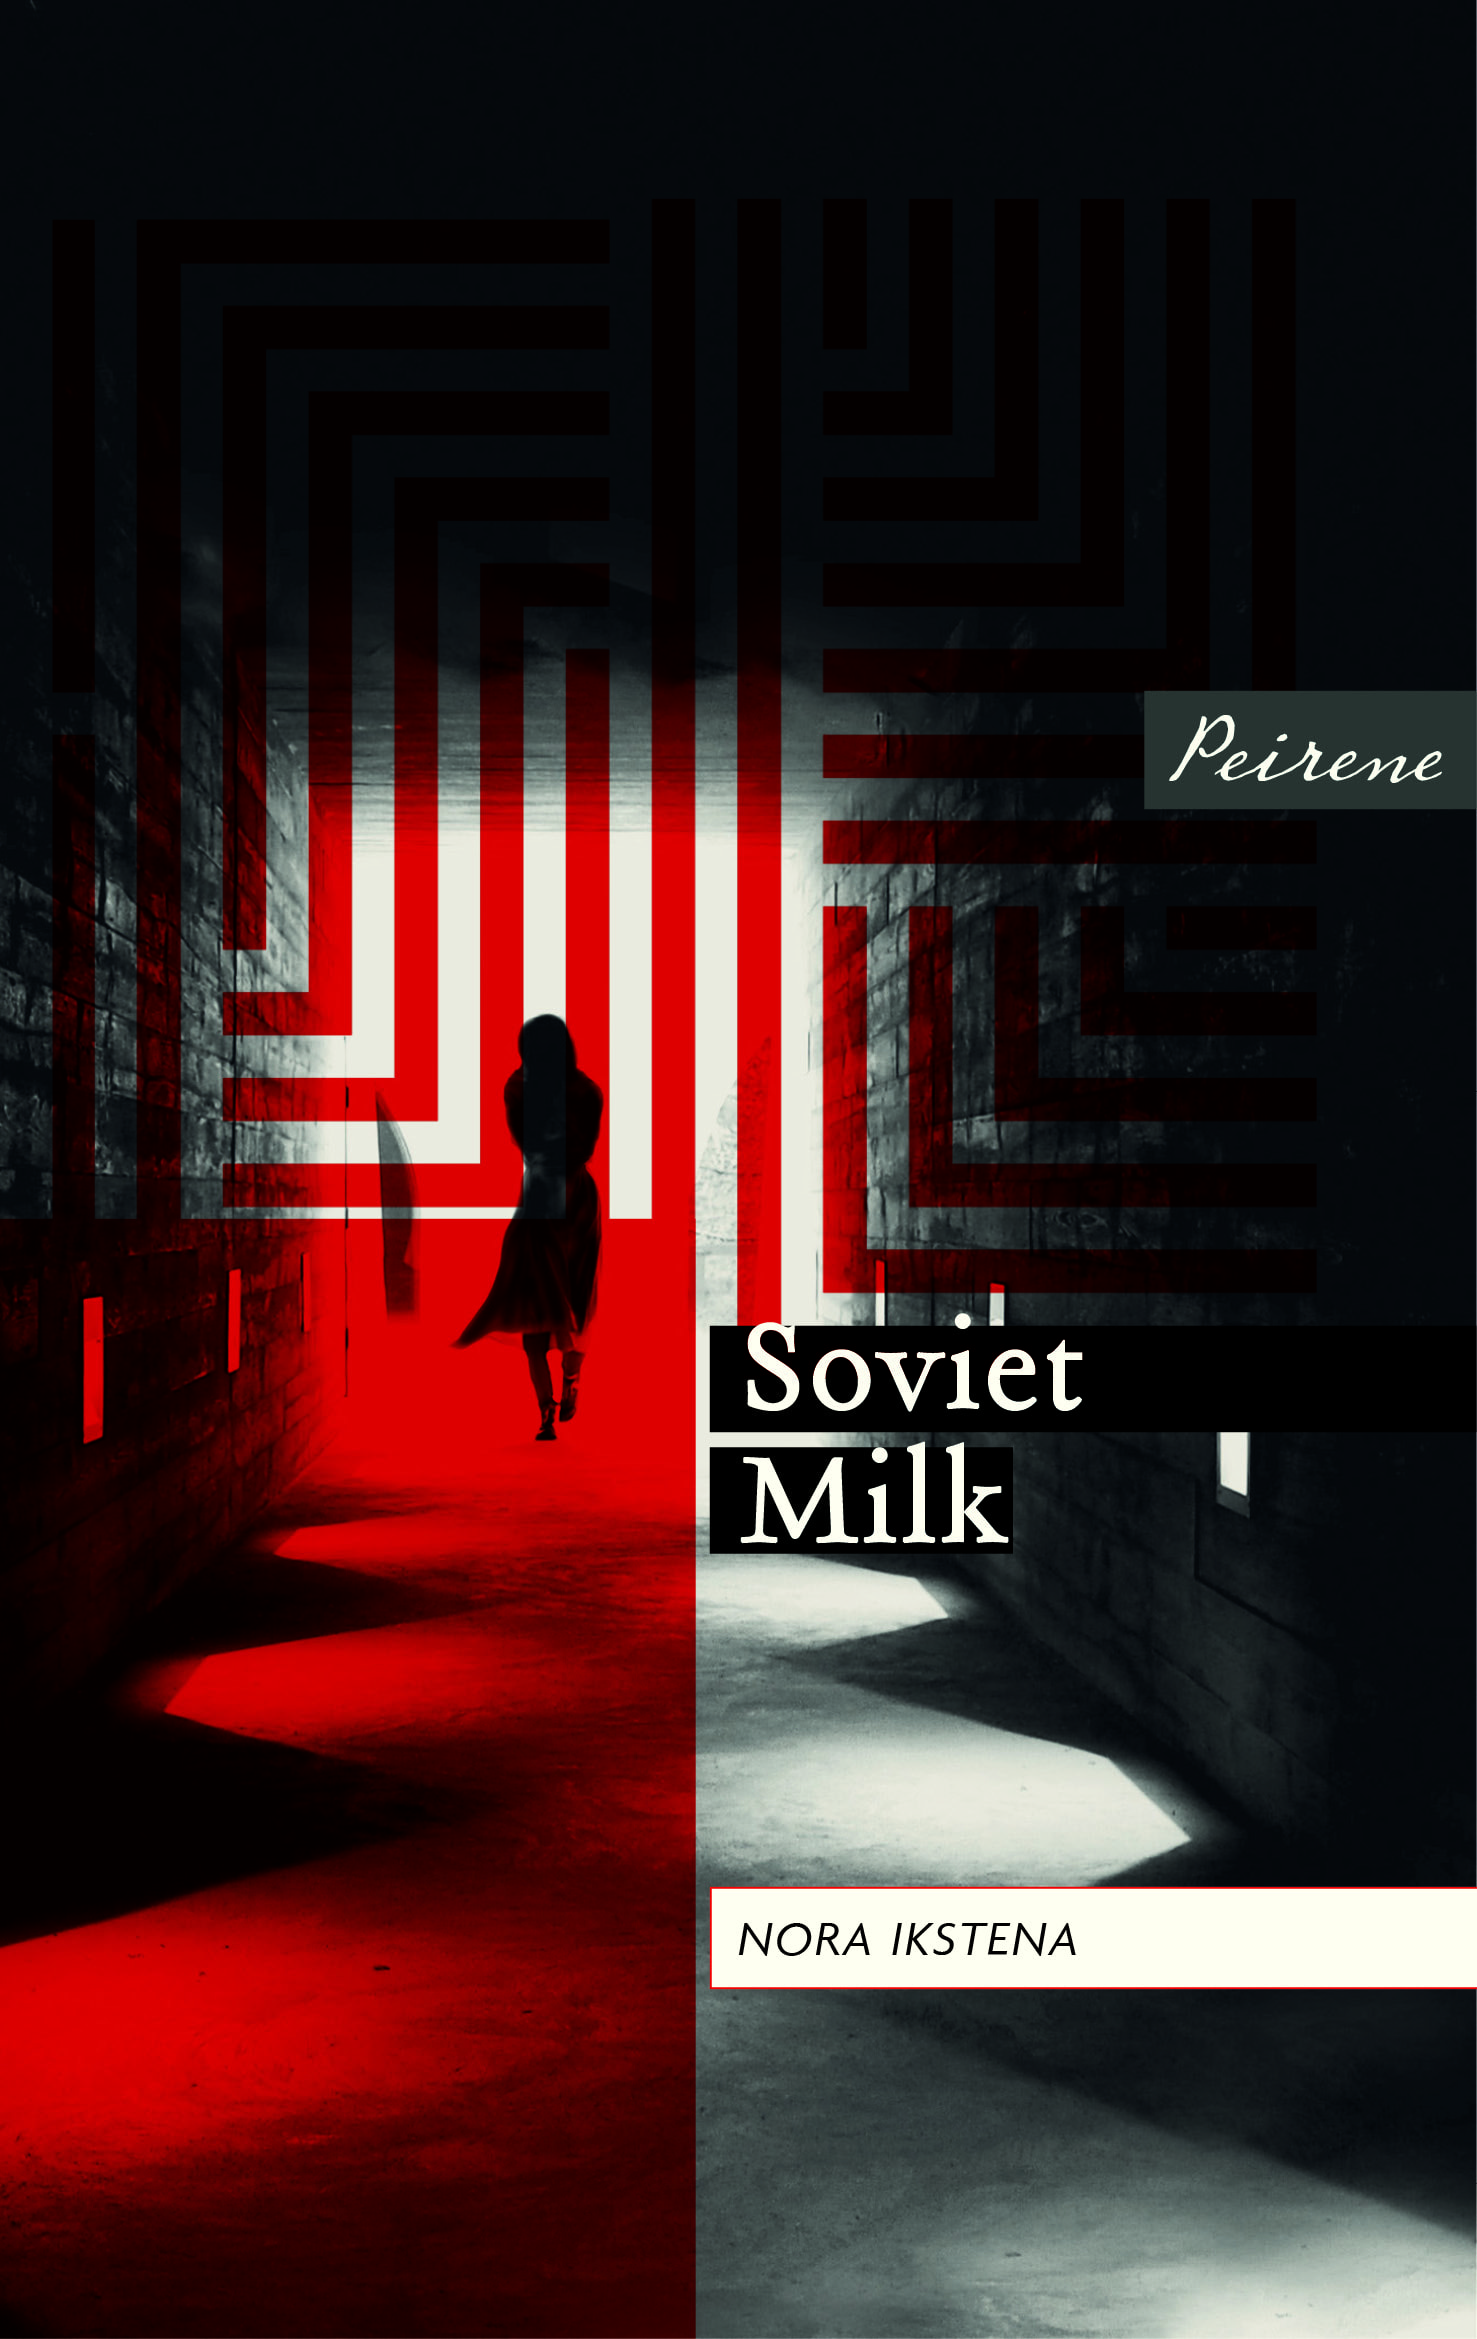 Soviet Milk jacket image